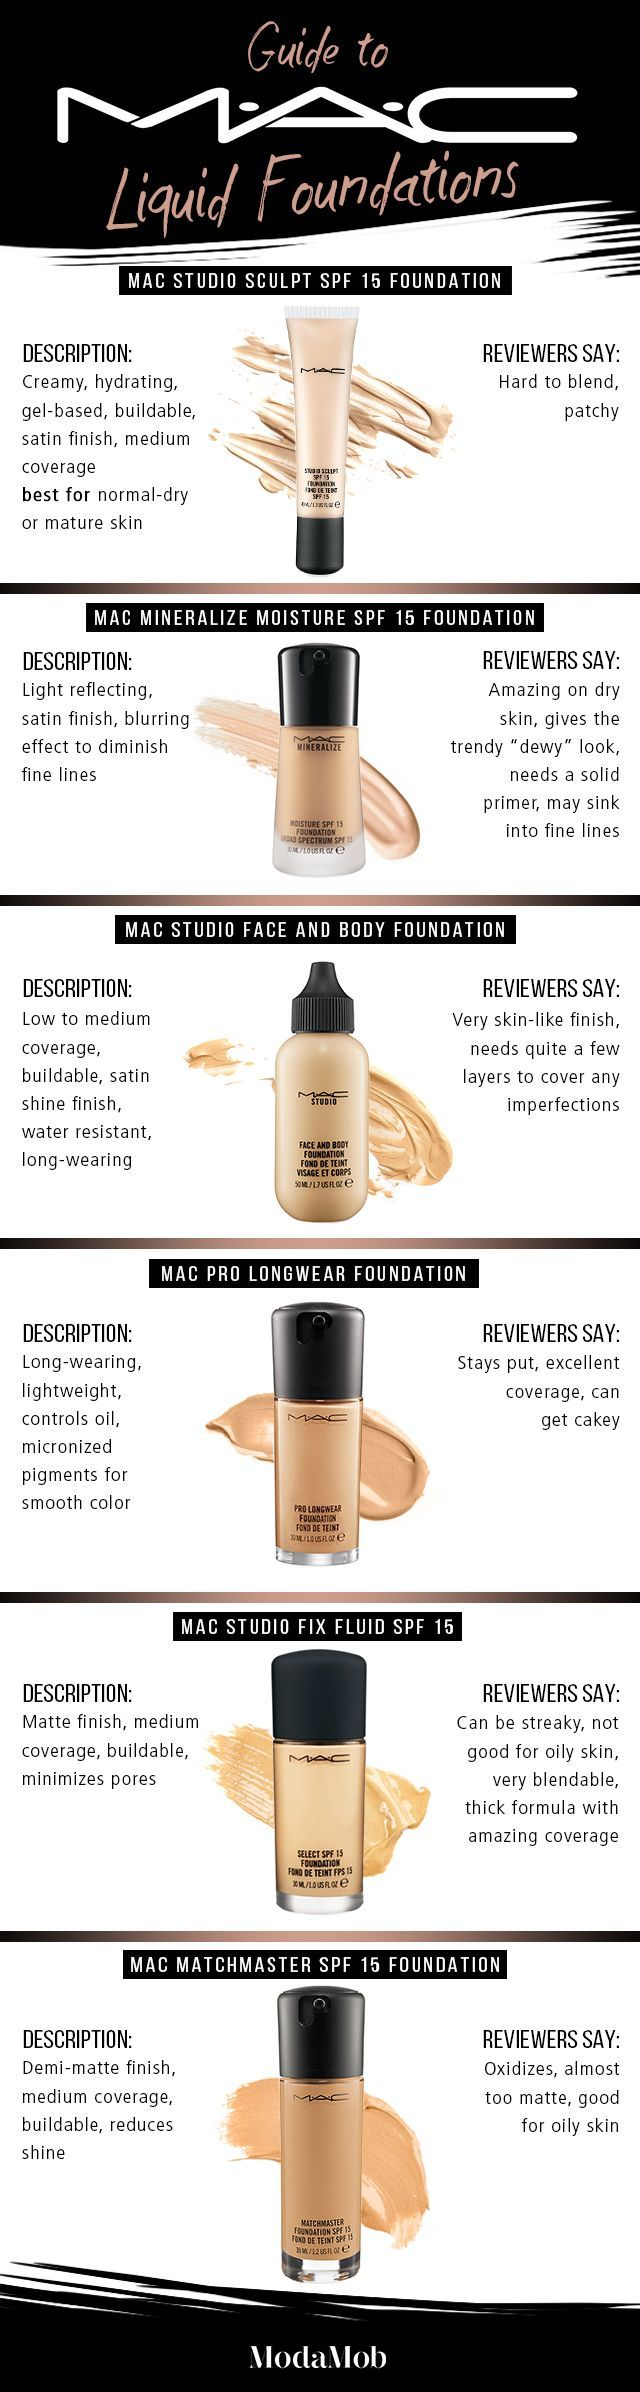 (Consider this your MAC liquid foundation BIBLE) When it comes to MAC foundations, the beauty industry is pretty divided. For some these are holy grails, while others swear they breed breakouts. If you're on the fence, here's a complete breakdown of the pros and cons of each liquid foundation MAC offers.